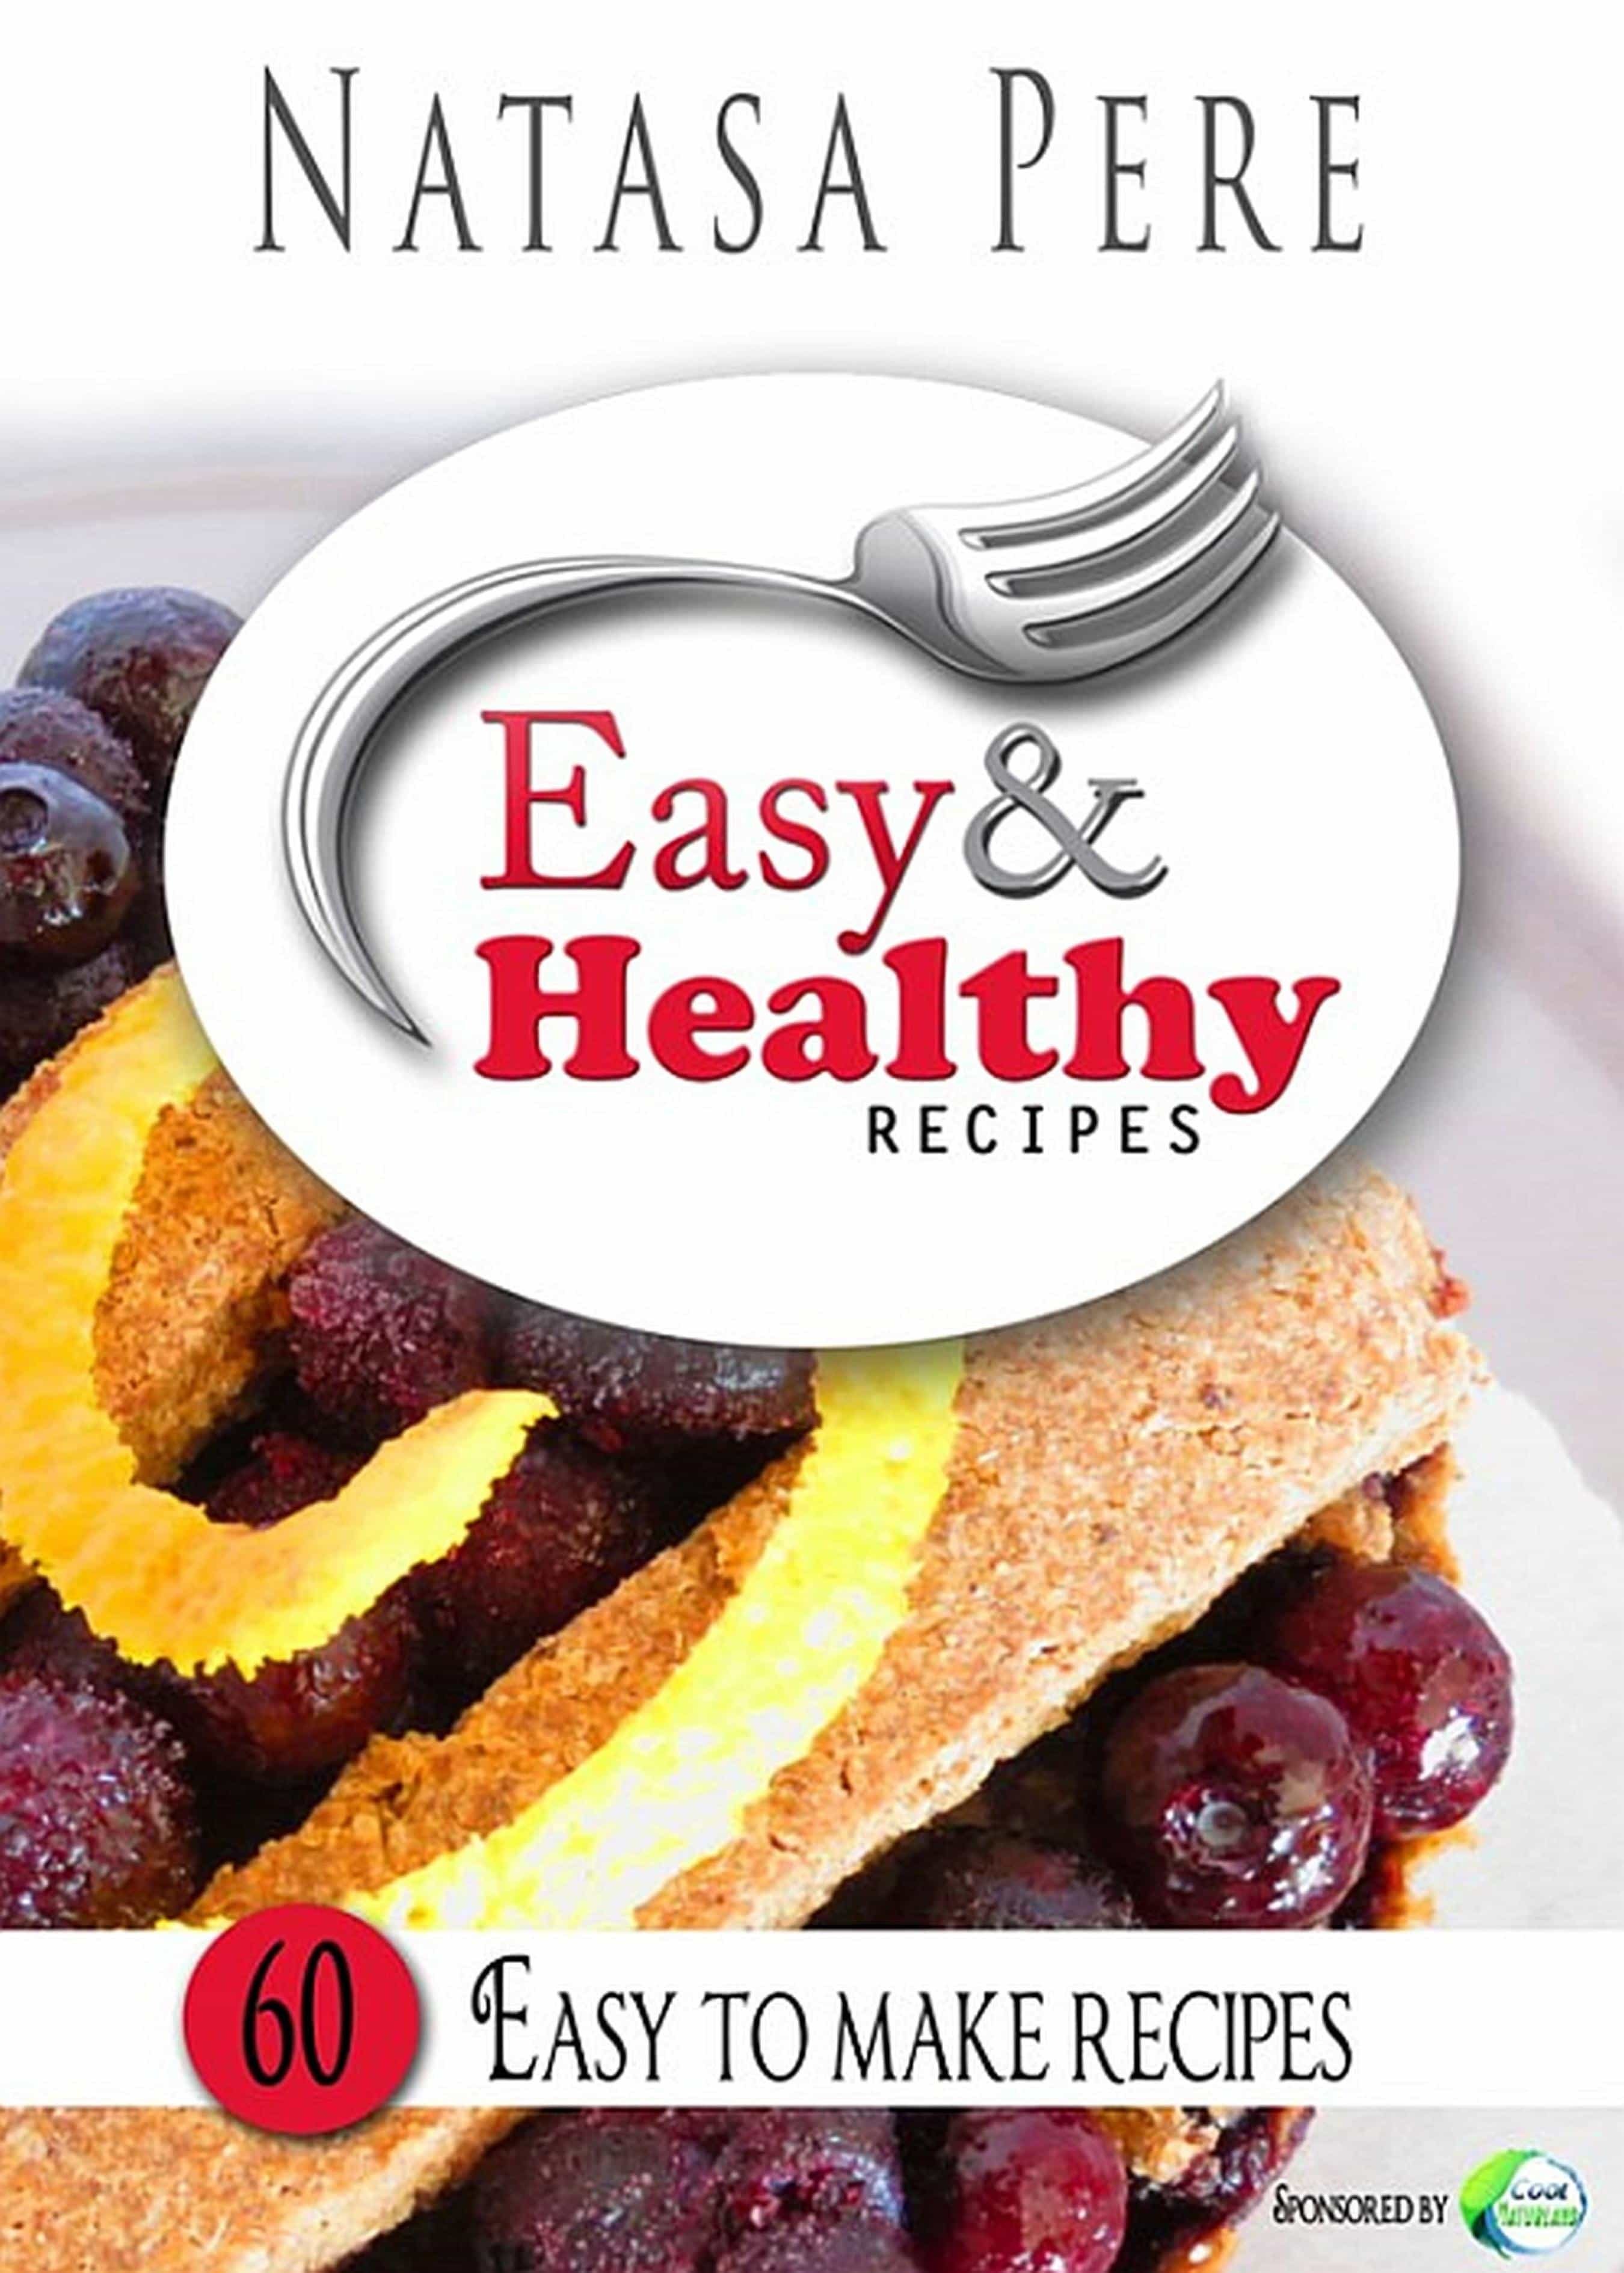 Easy healthy recipes ebook natasa pere descargar libro pdf o easy healthy recipes ebook natasa pere 9783958494695 forumfinder